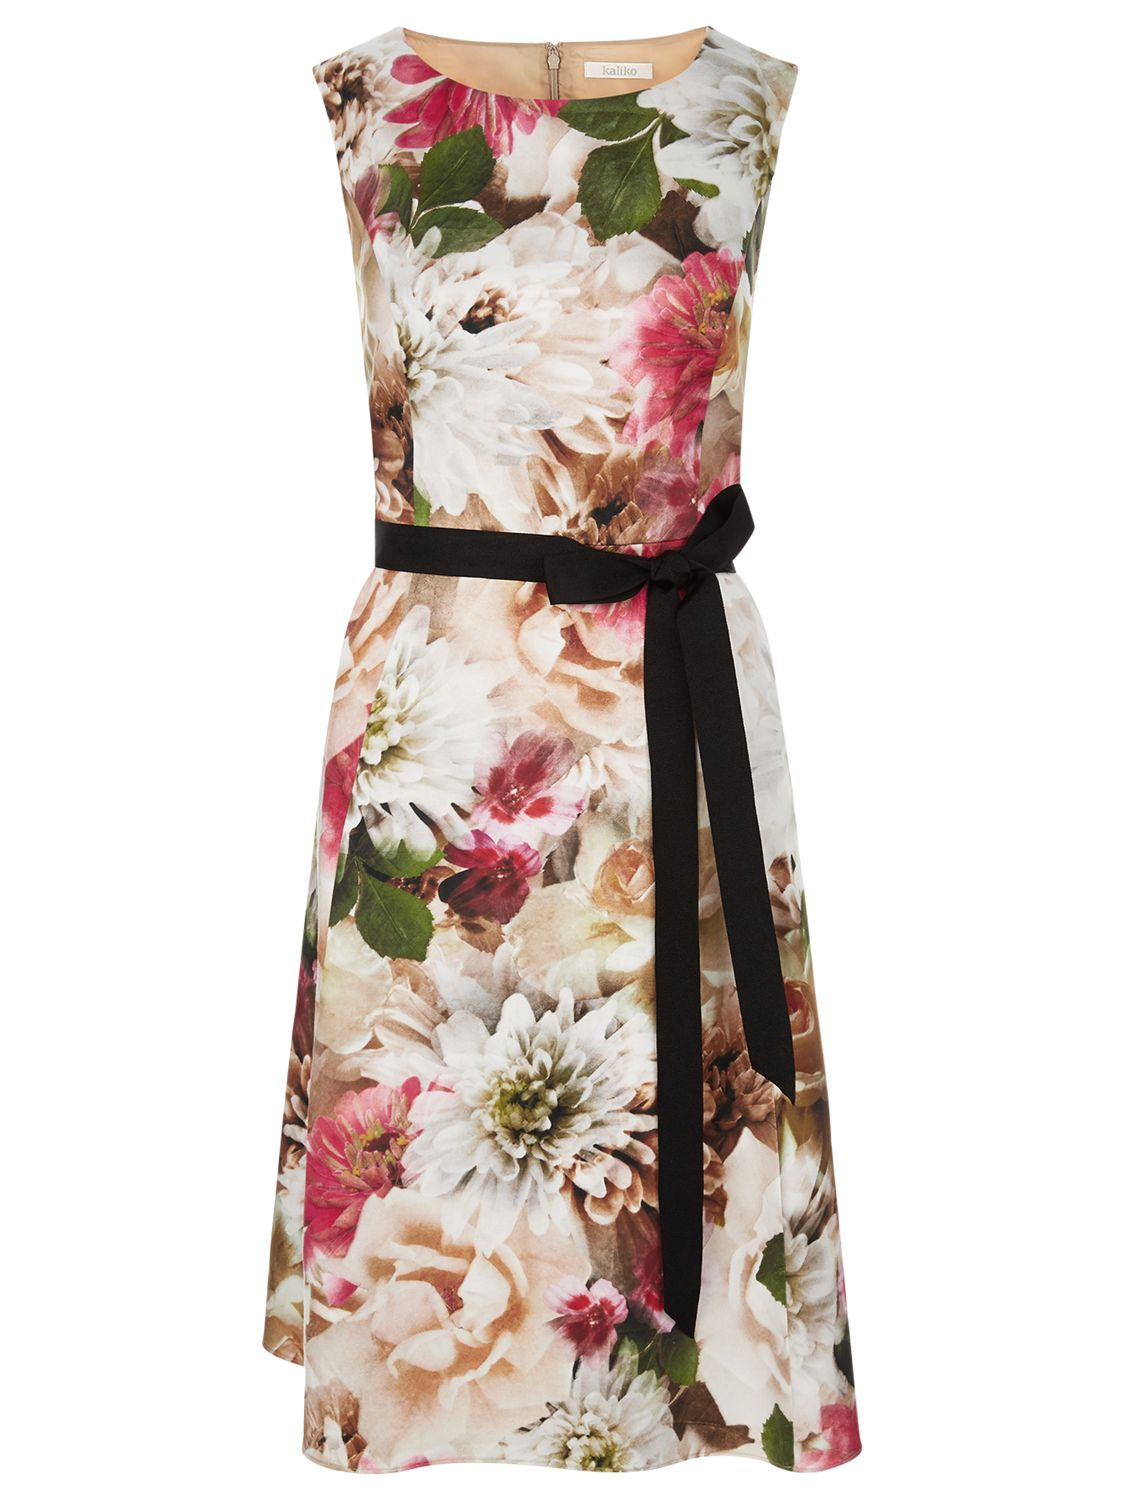 kaliko bouquet flora prom cotton dress multi, kaliko, bouquet, flora, prom, cotton, dress, multi, 8|20|12|10|16|14|18, women, plus size, womens dresses, gifts, wedding, wedding clothing, female guests, 1887541